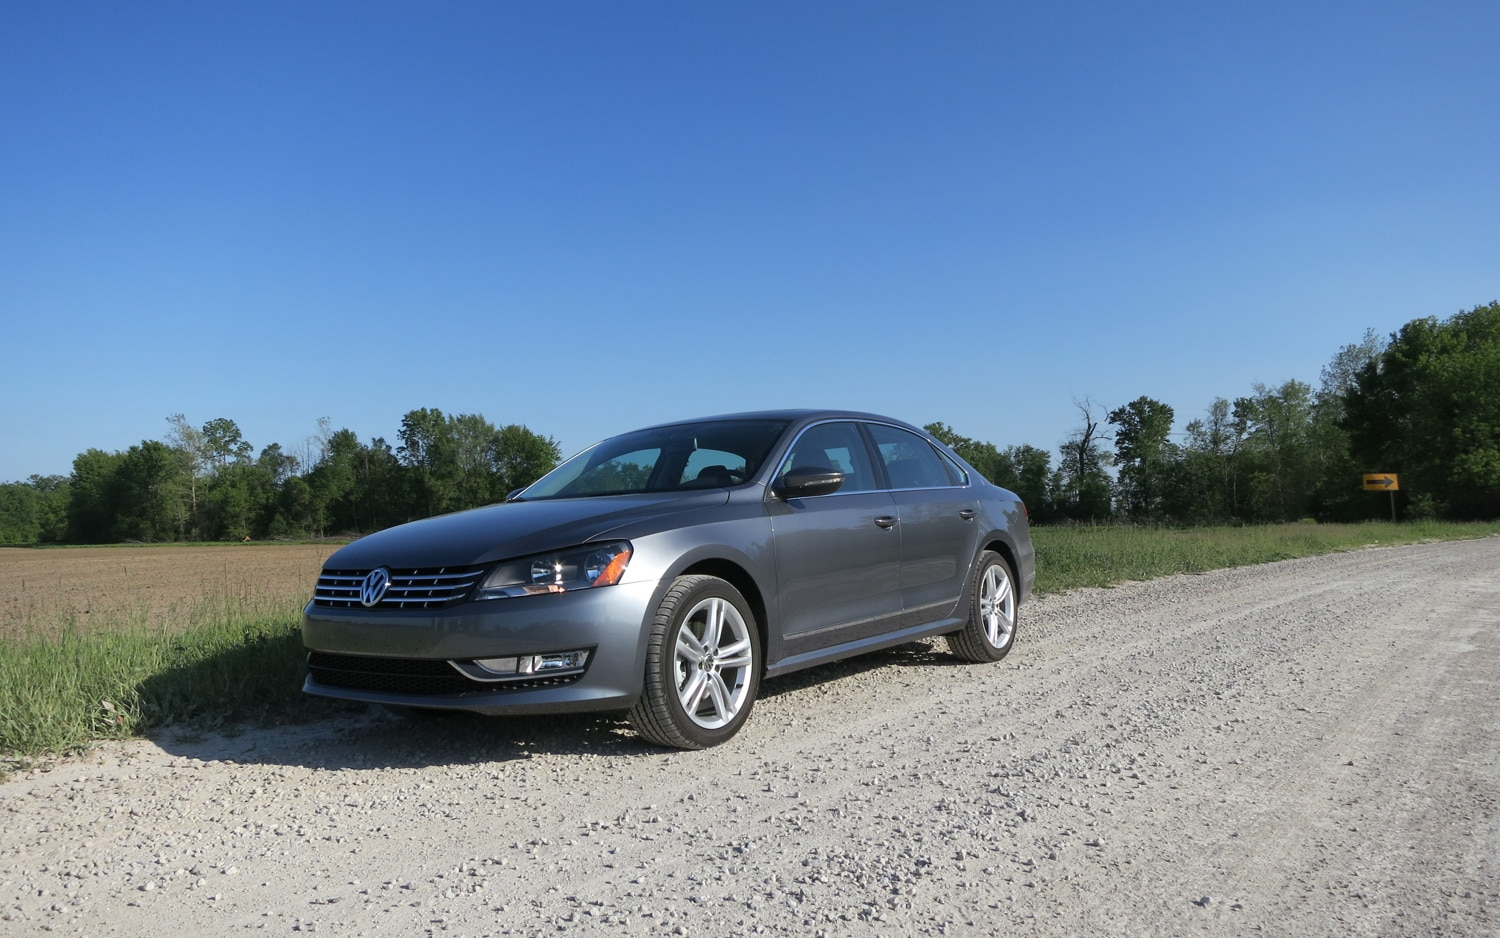 2012 Volkswagen Passat SE TDI Front Left Side View1